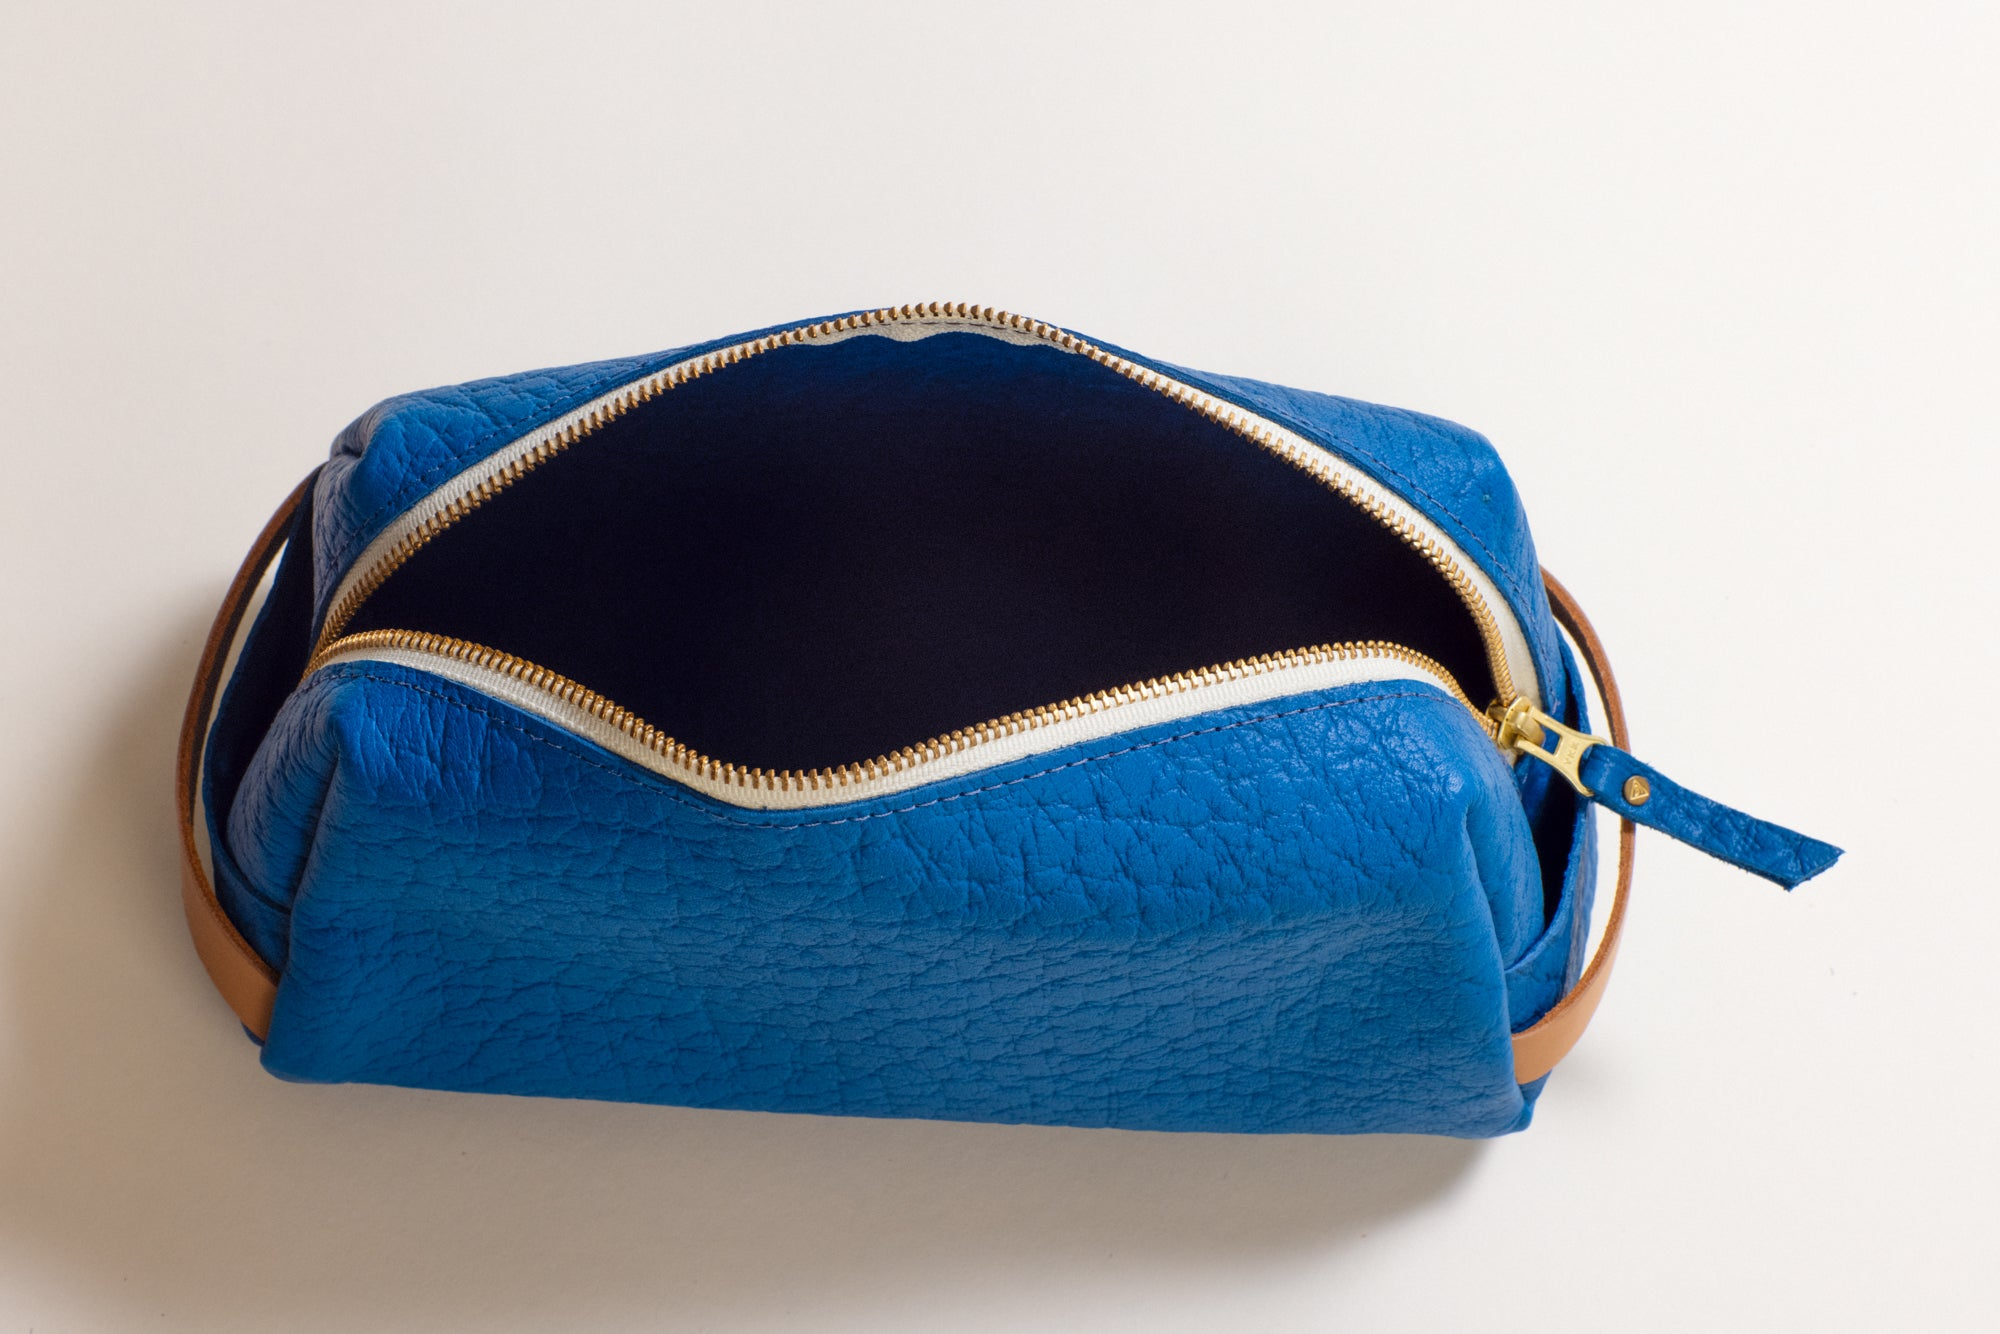 The Dopp Kit Blue Bison